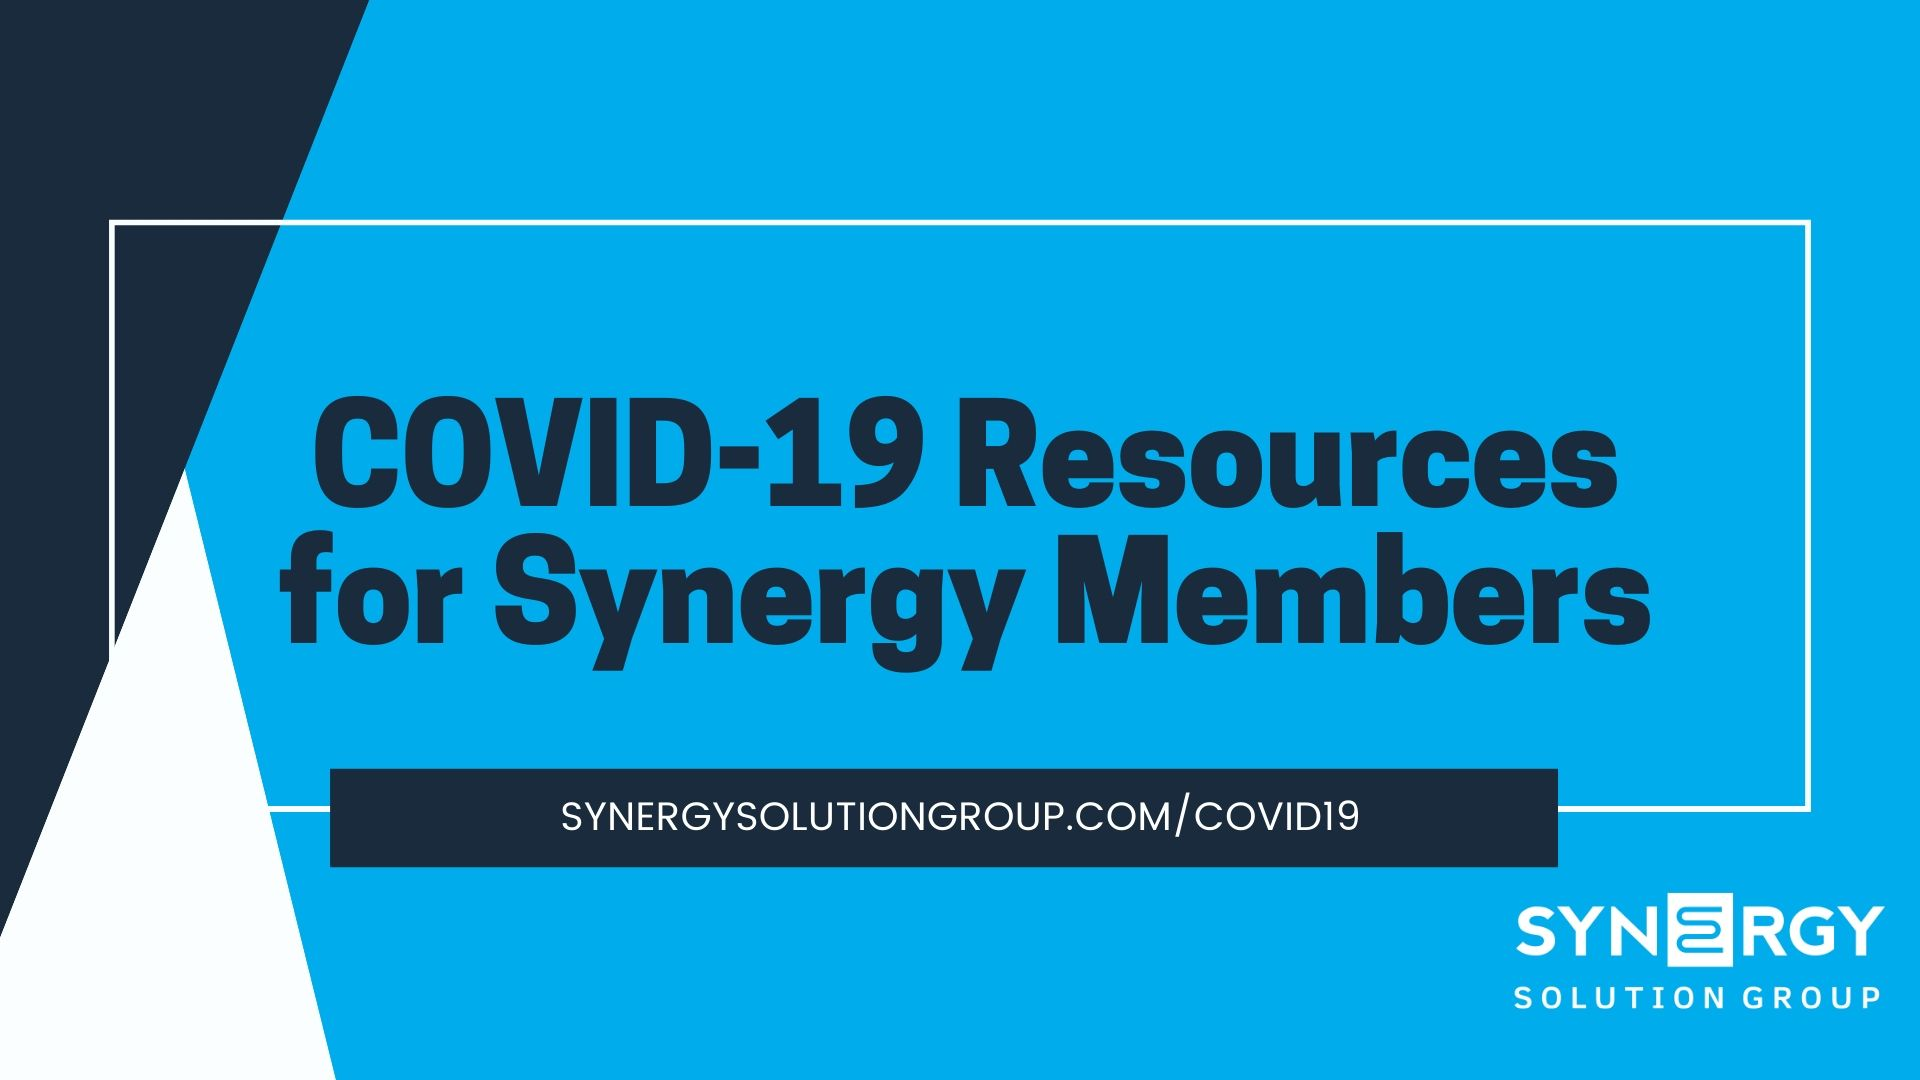 COVID-19 Resources for Synergy Members